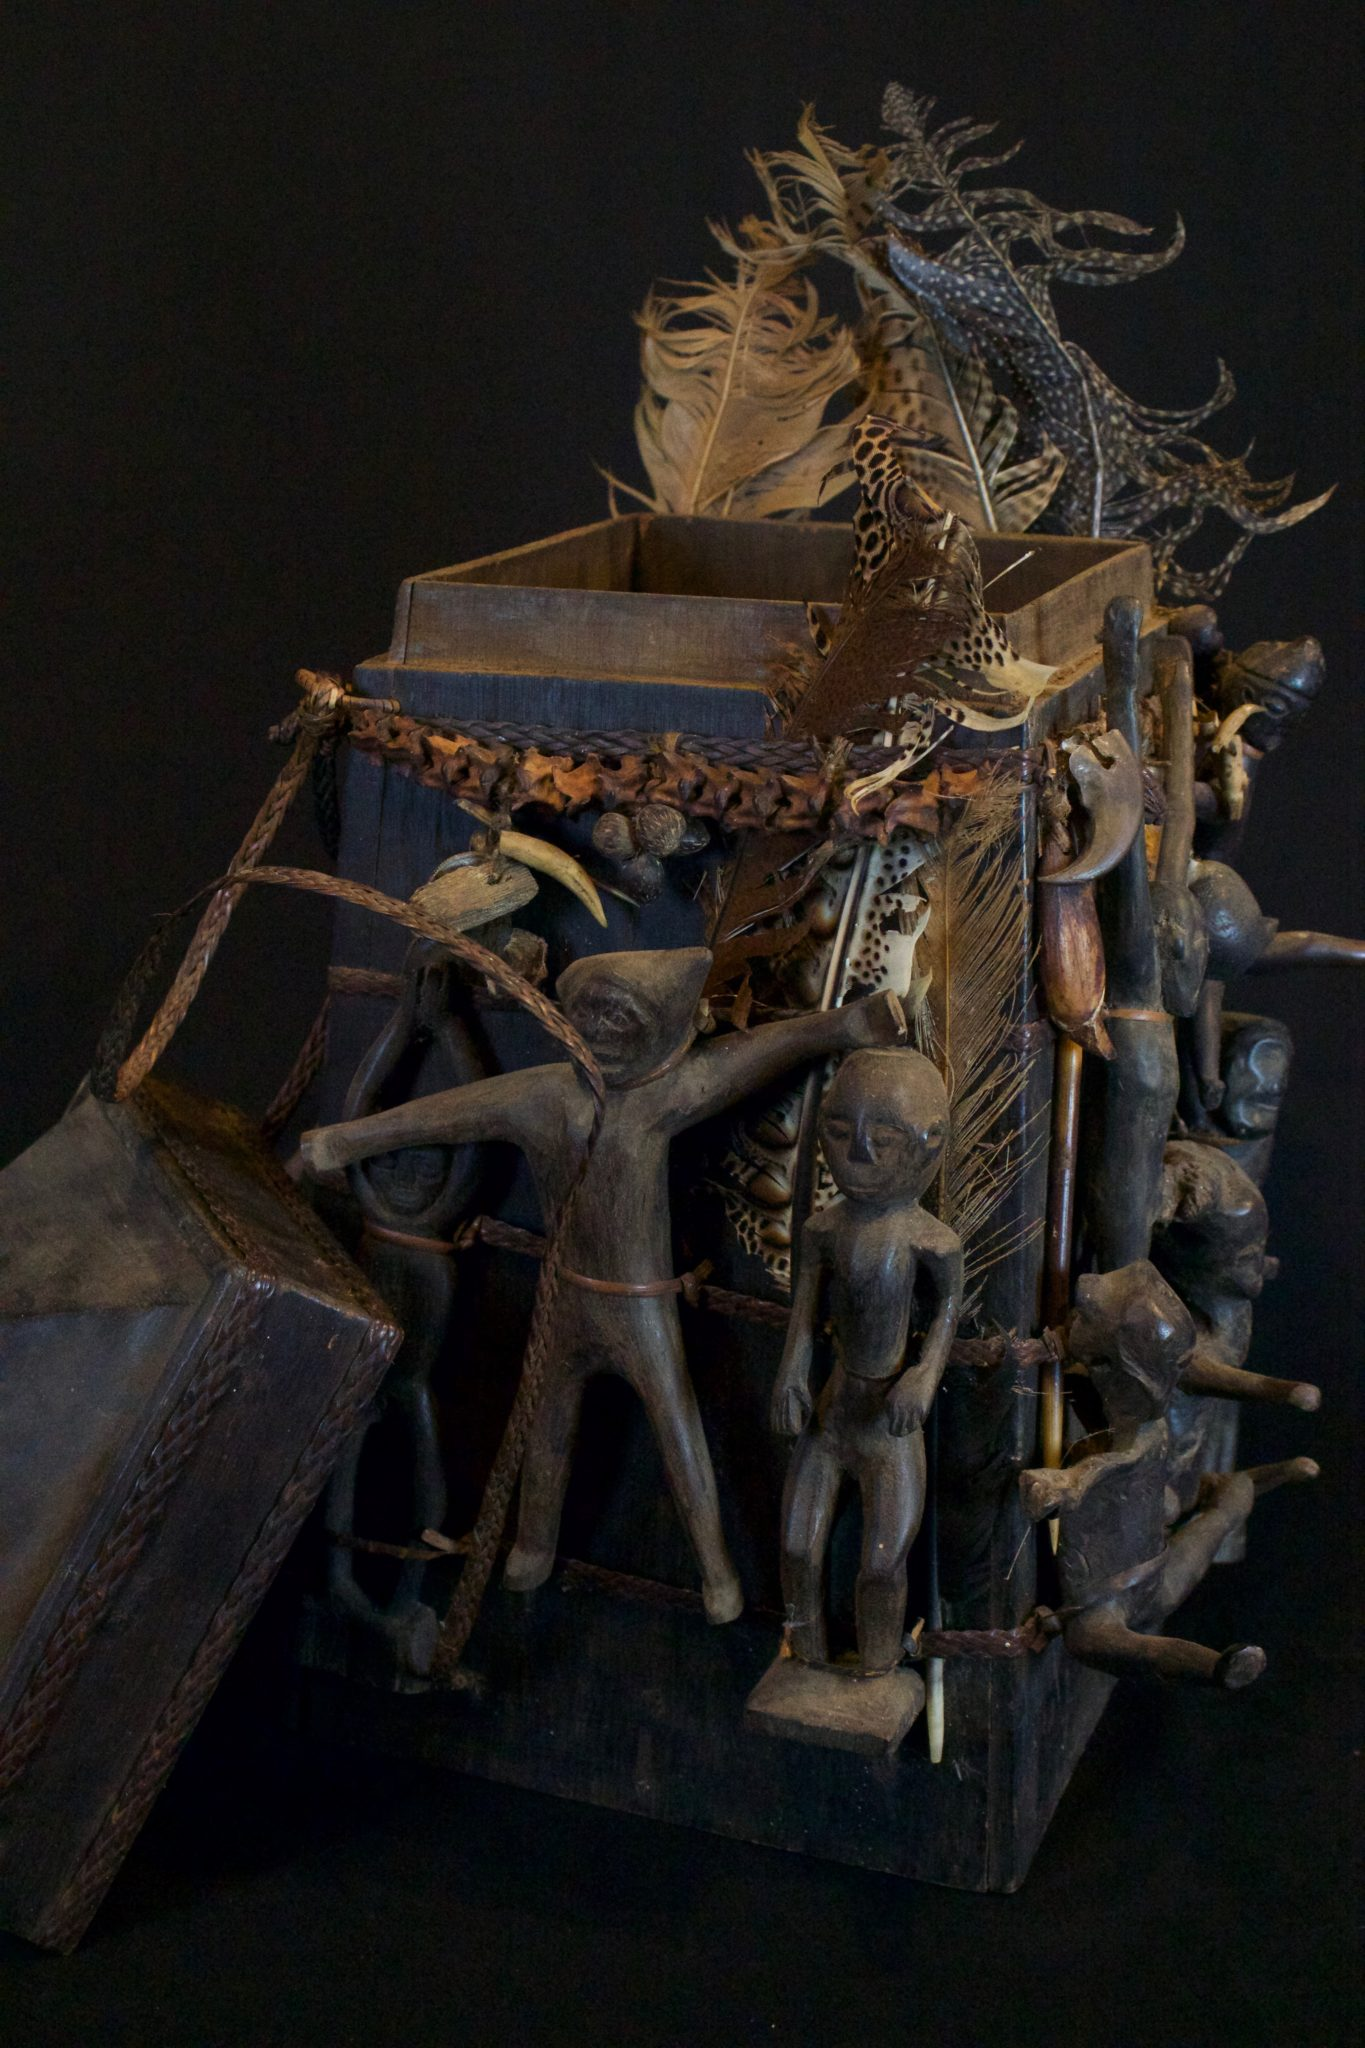 "'Lupong Manang' Shaman's Medicine Carrier/Backpack with Healing Charm Figures (rare), East Kalimantan, Borneo, Indonesia, Dayak tribe. Late 19th to early 20th c, Wood, braided reed, feathers. The Shaman made his own medicine kit to contain items for healing, protections and predictions – such as special teeth, stones and other items. The figures on the exterior correspond to illnesses and other conditions or ailments. 17 ½"" x 13"" x 13"", $4800."